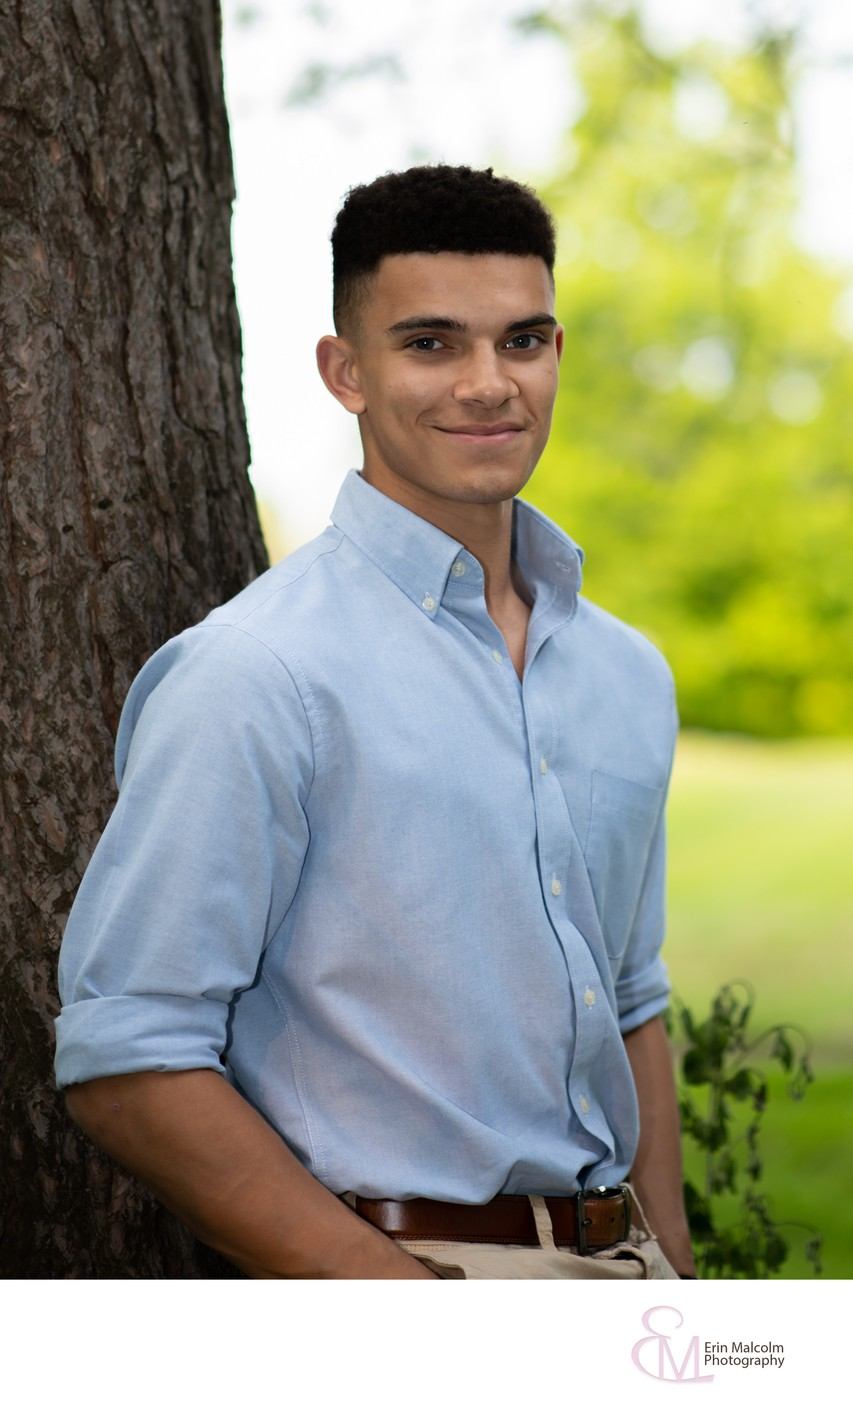 Clifton Park, NY Senior Portrait Photographer